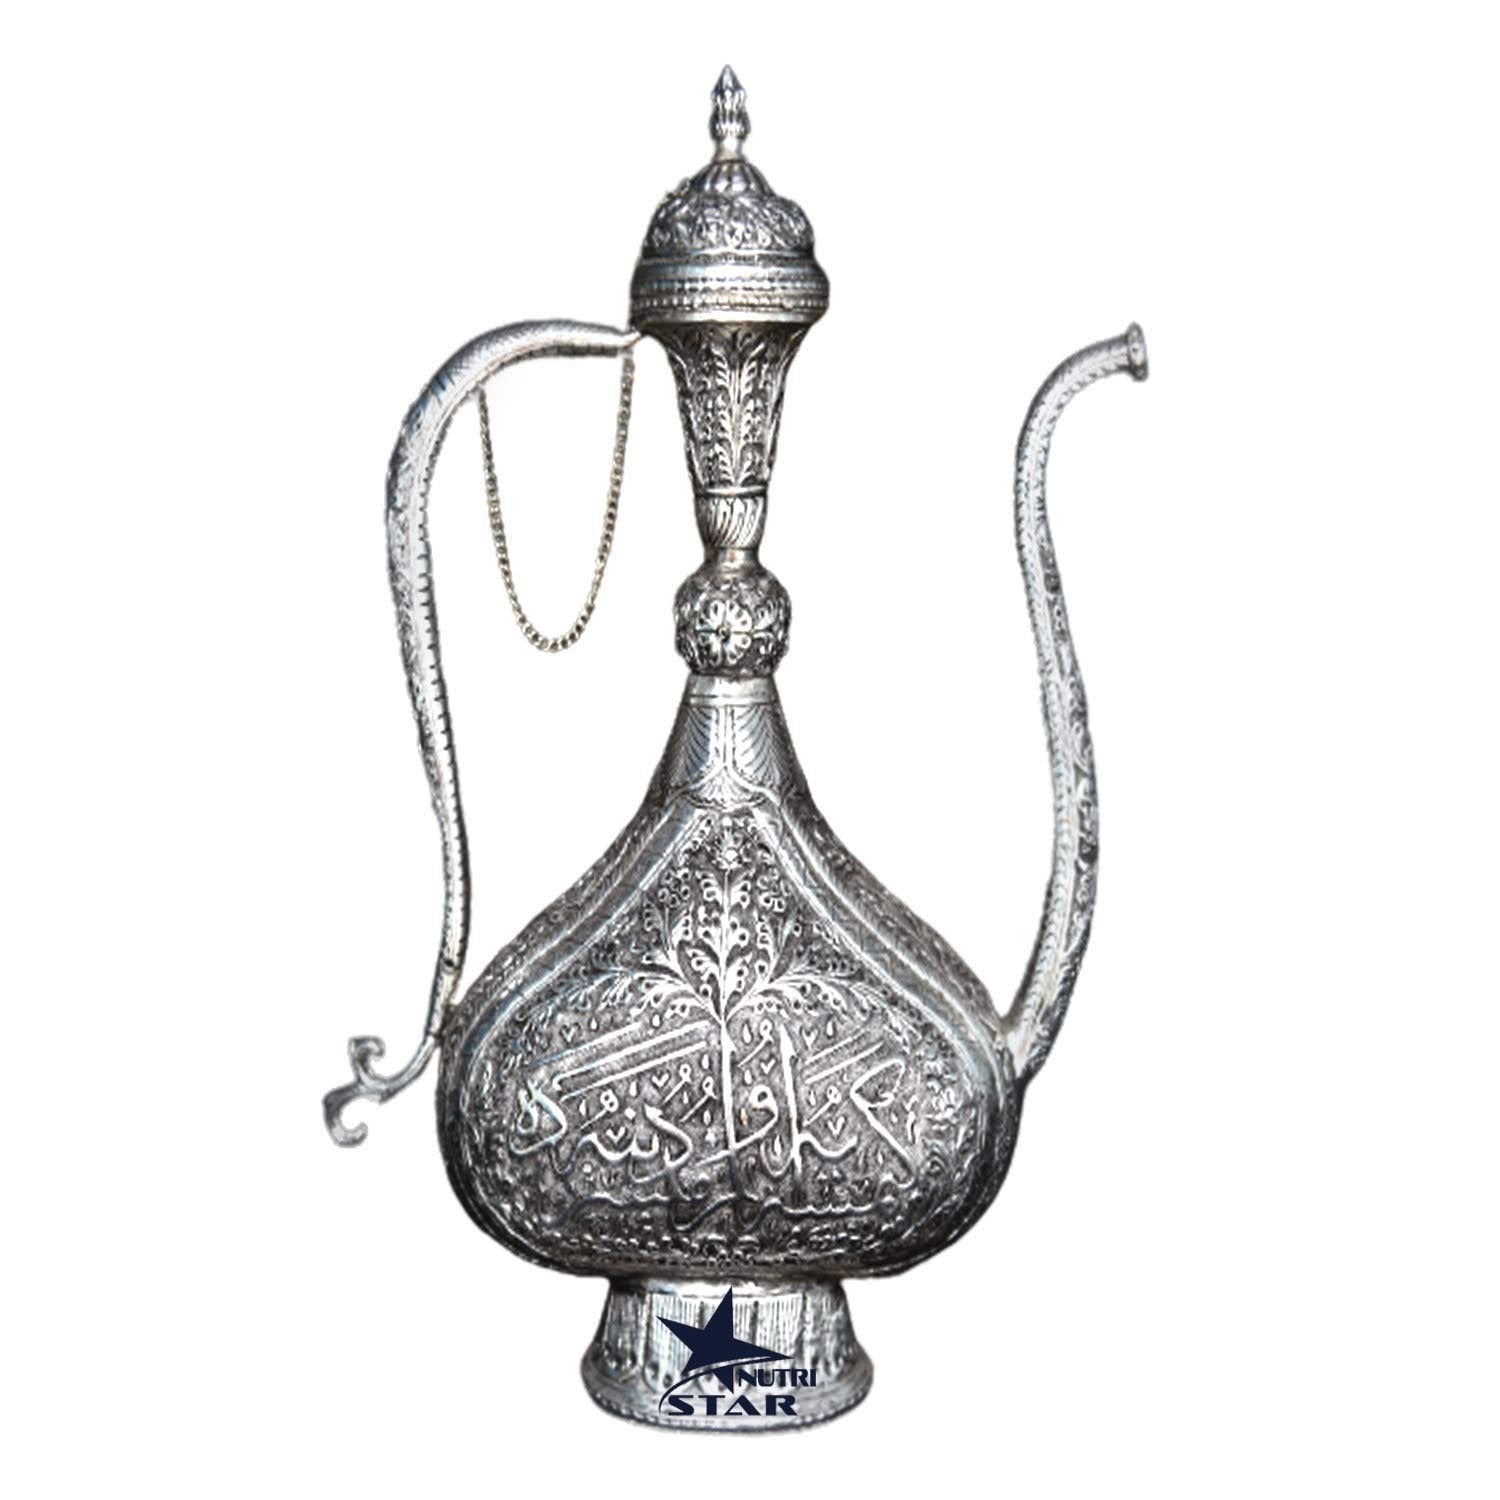 Nutristar Hand Crafted Aftaba Showpiece with Nakkashi Design. Pure Copper Silver Coated Surhai mughul era- Showpiece for Home Decor. 2